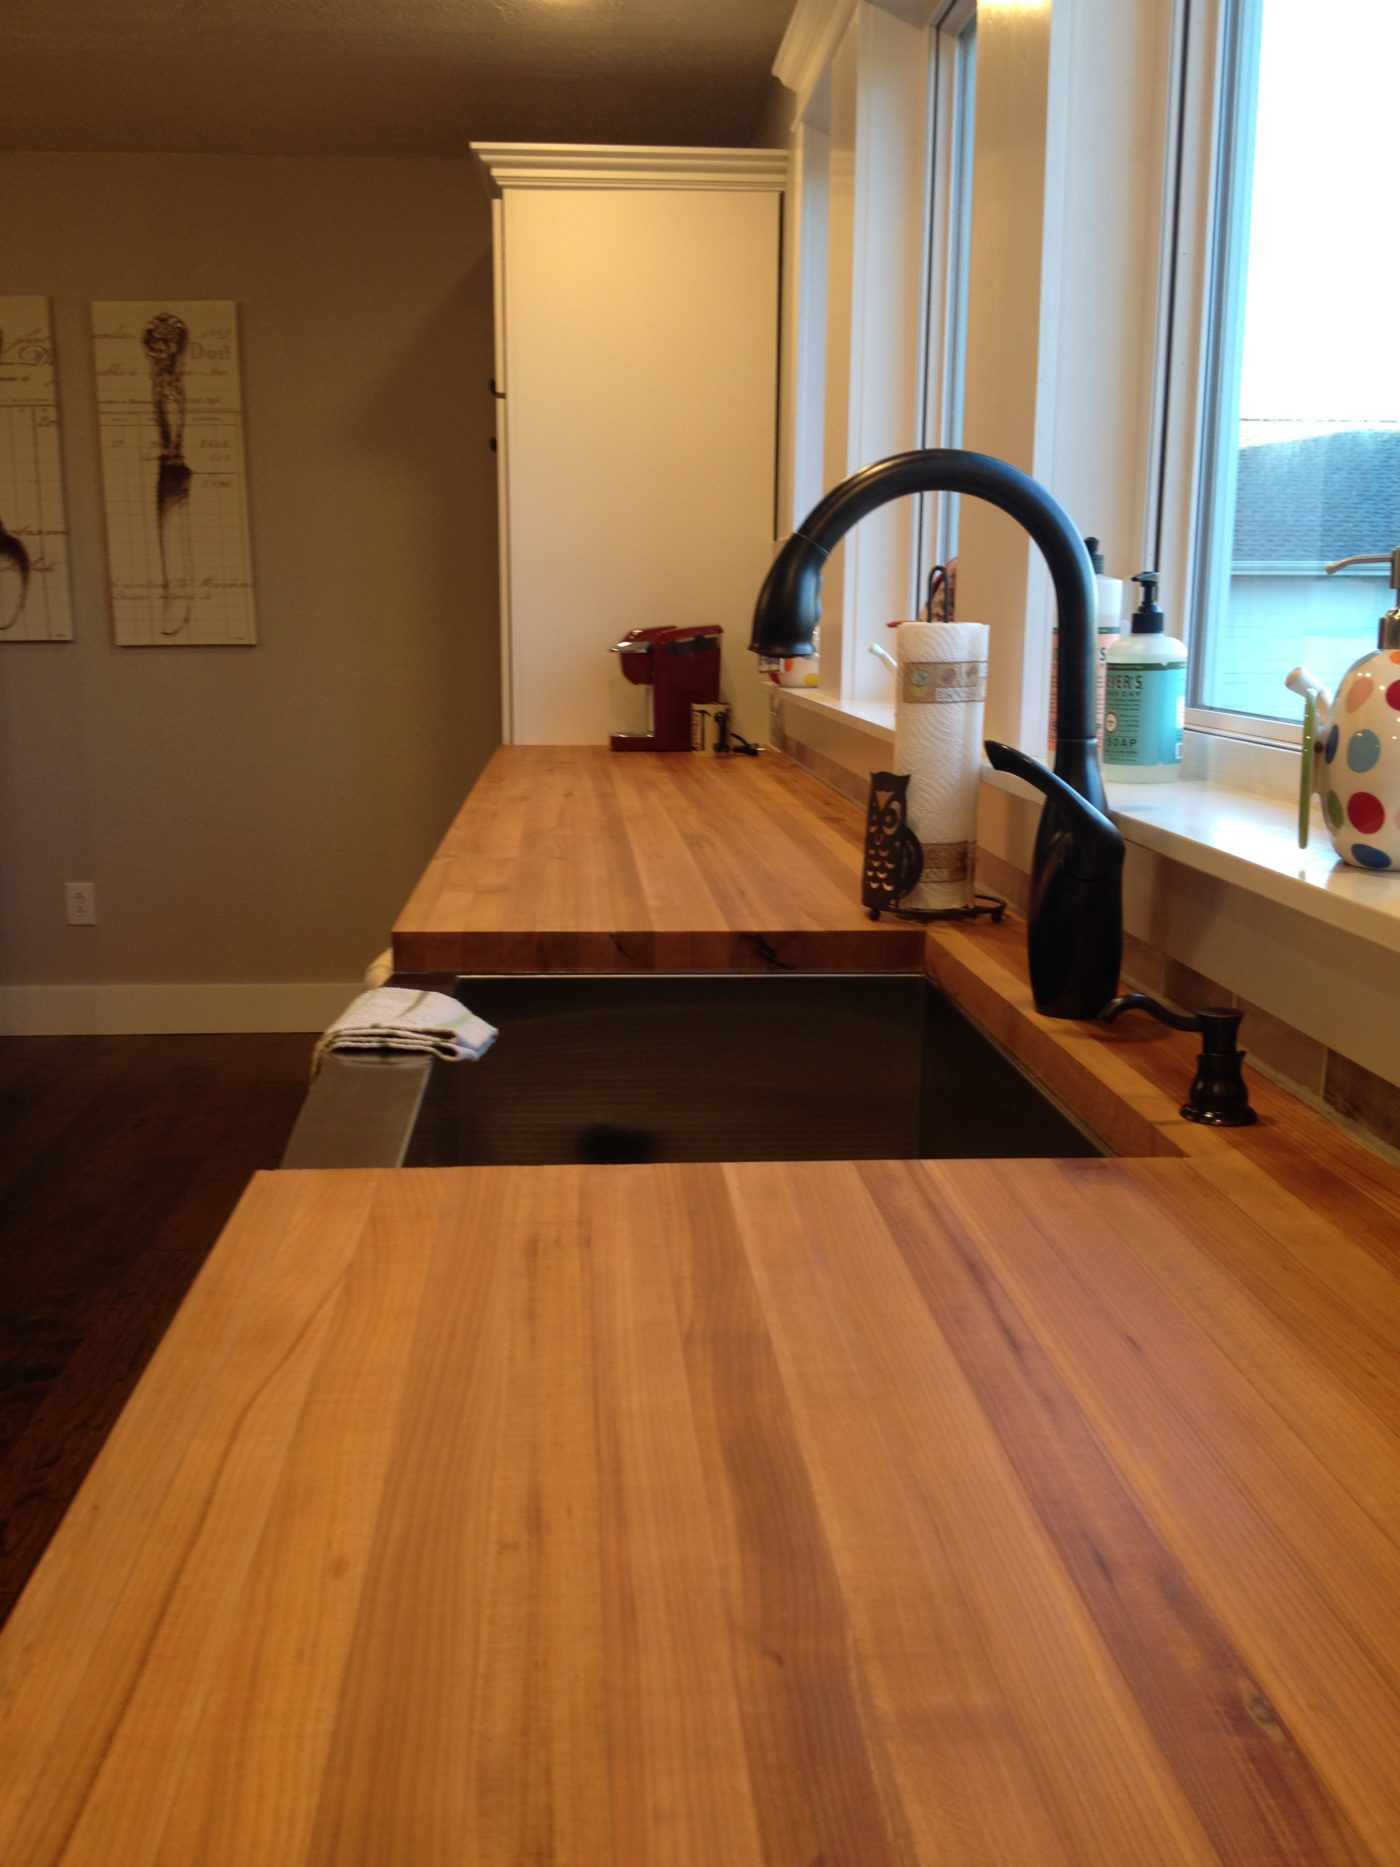 My Take On Butcher Block Countertops Woodn T You Like To Know